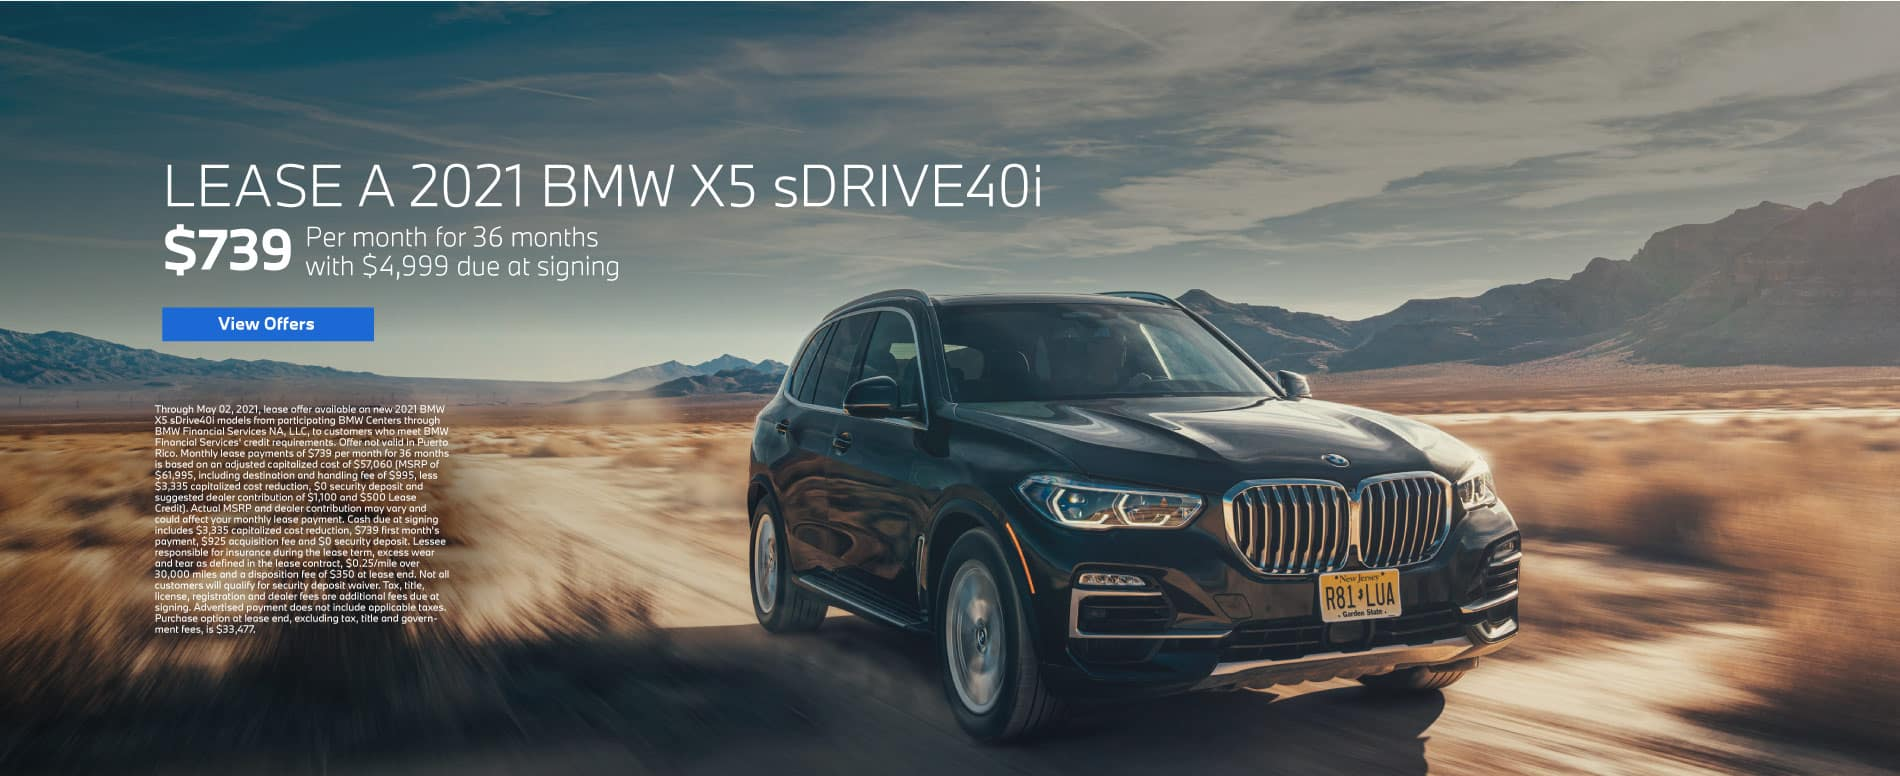 Lease a 2021 BMW X5 for $739 per month - View Offers